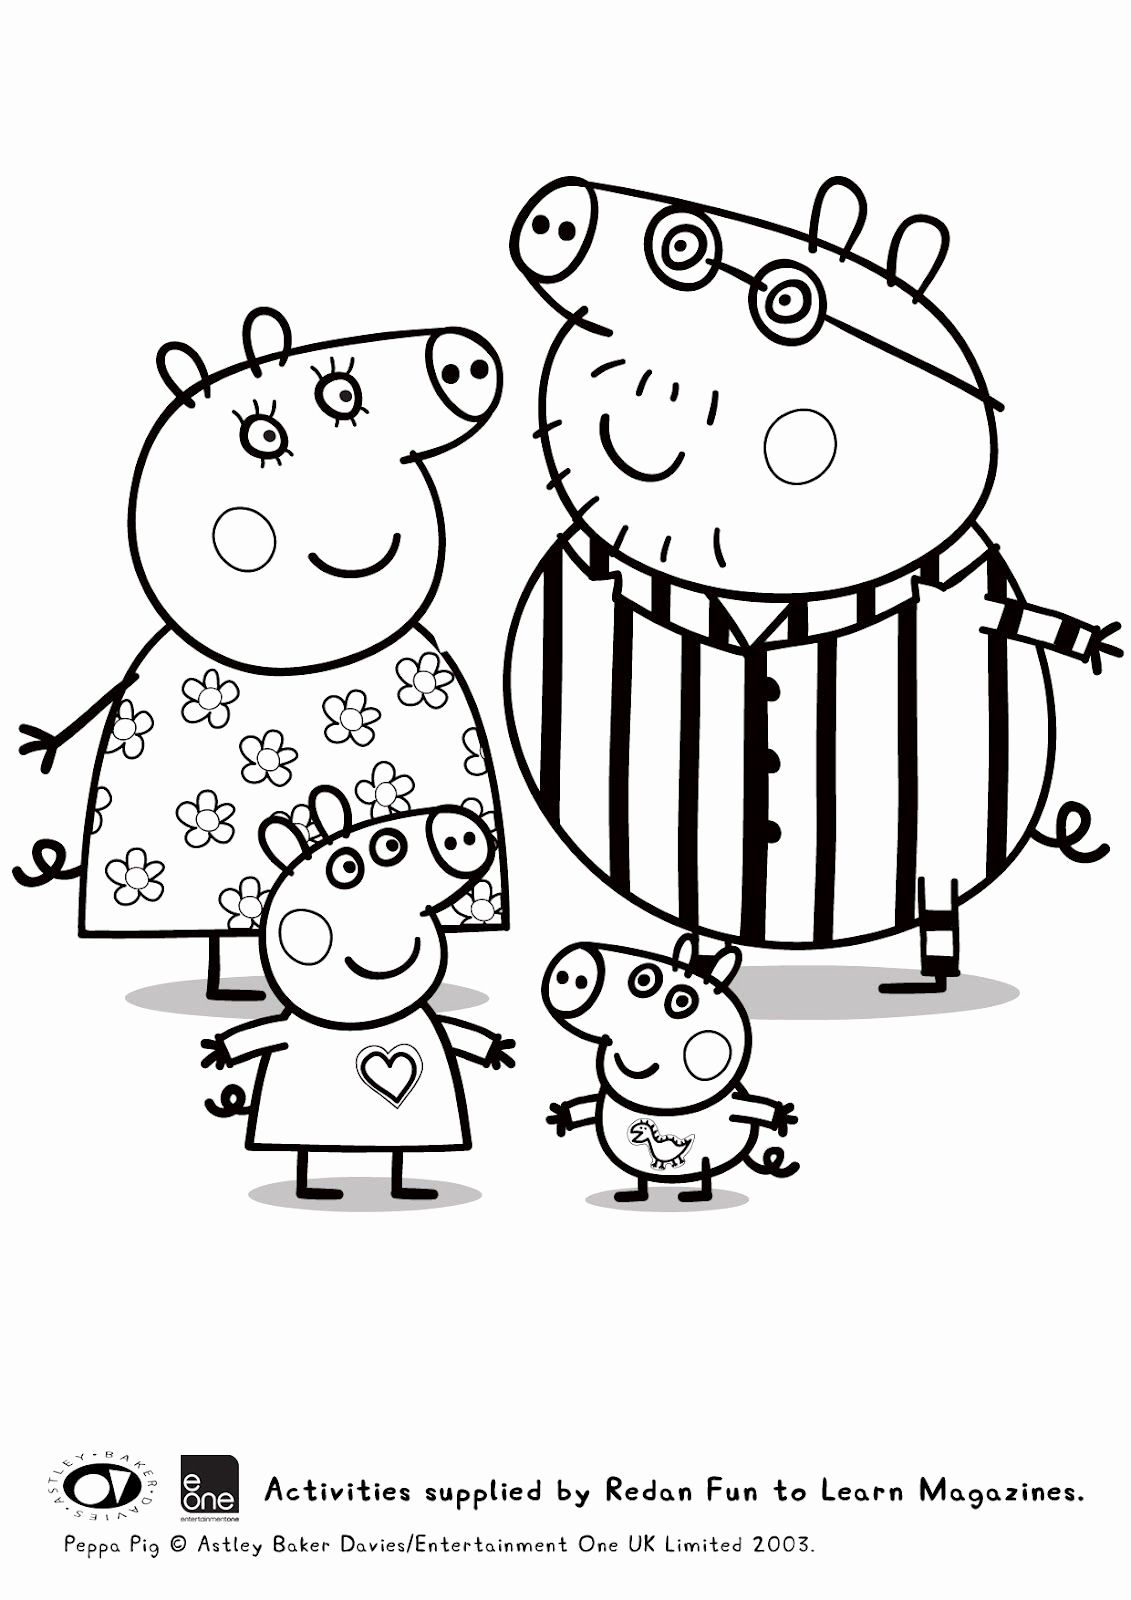 Free Printable Coloring Pages Peppa Pig Luxury Disegni Da Colorare Peppa Pig Disegni Da Colo Peppa Pig Coloring Pages Peppa Pig Colouring Turtle Coloring Pages